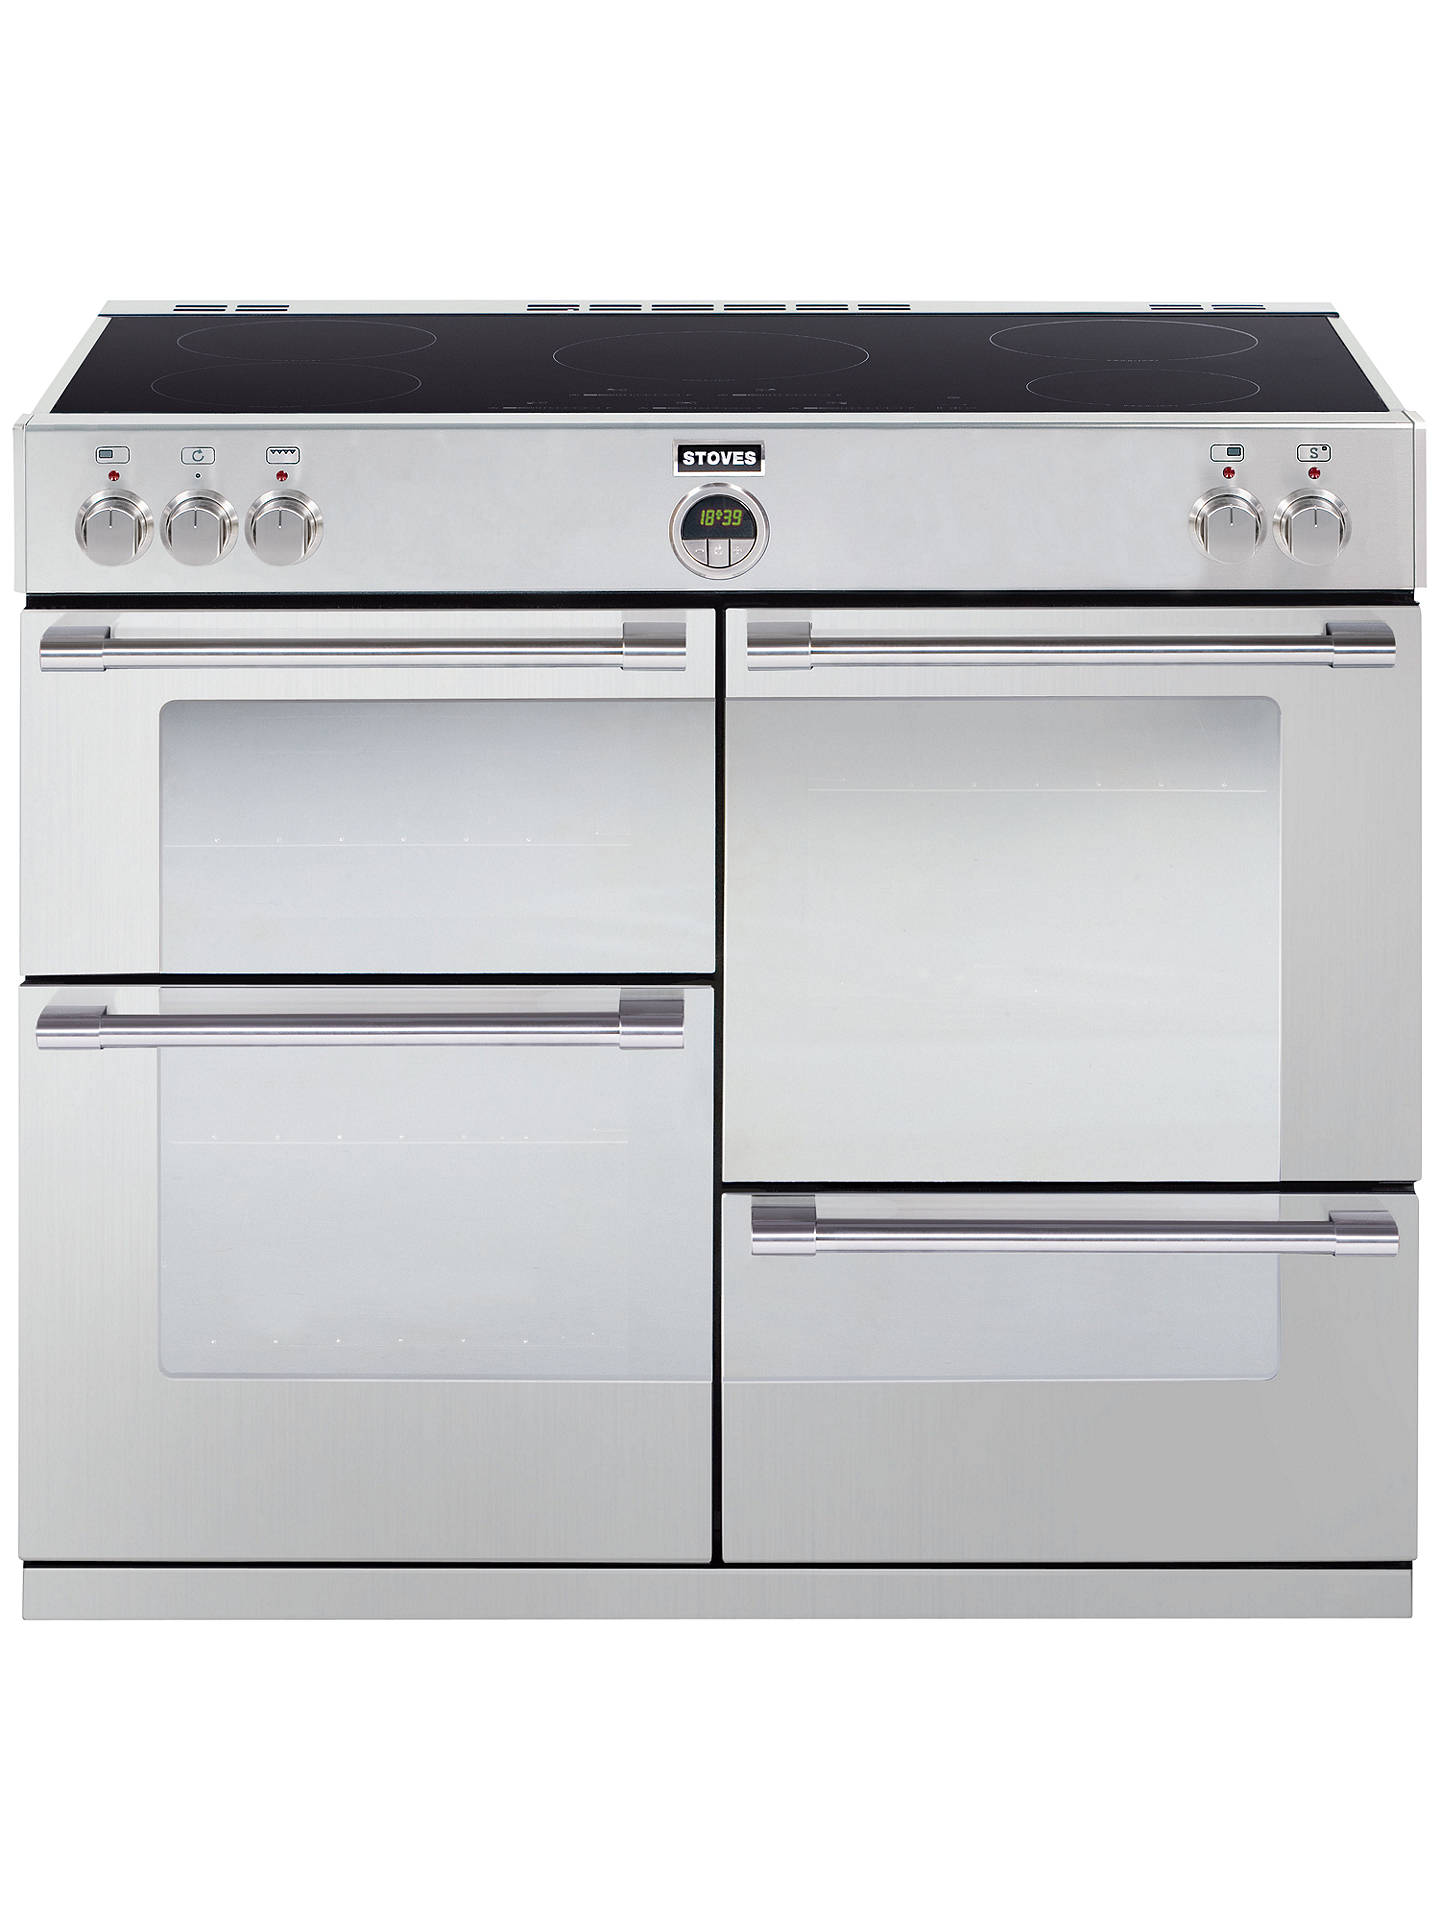 Stoves Sterling 1000ei Induction Hob Range Cooker Stainless Steel Wiring Electric Oven And Buystoves Online At